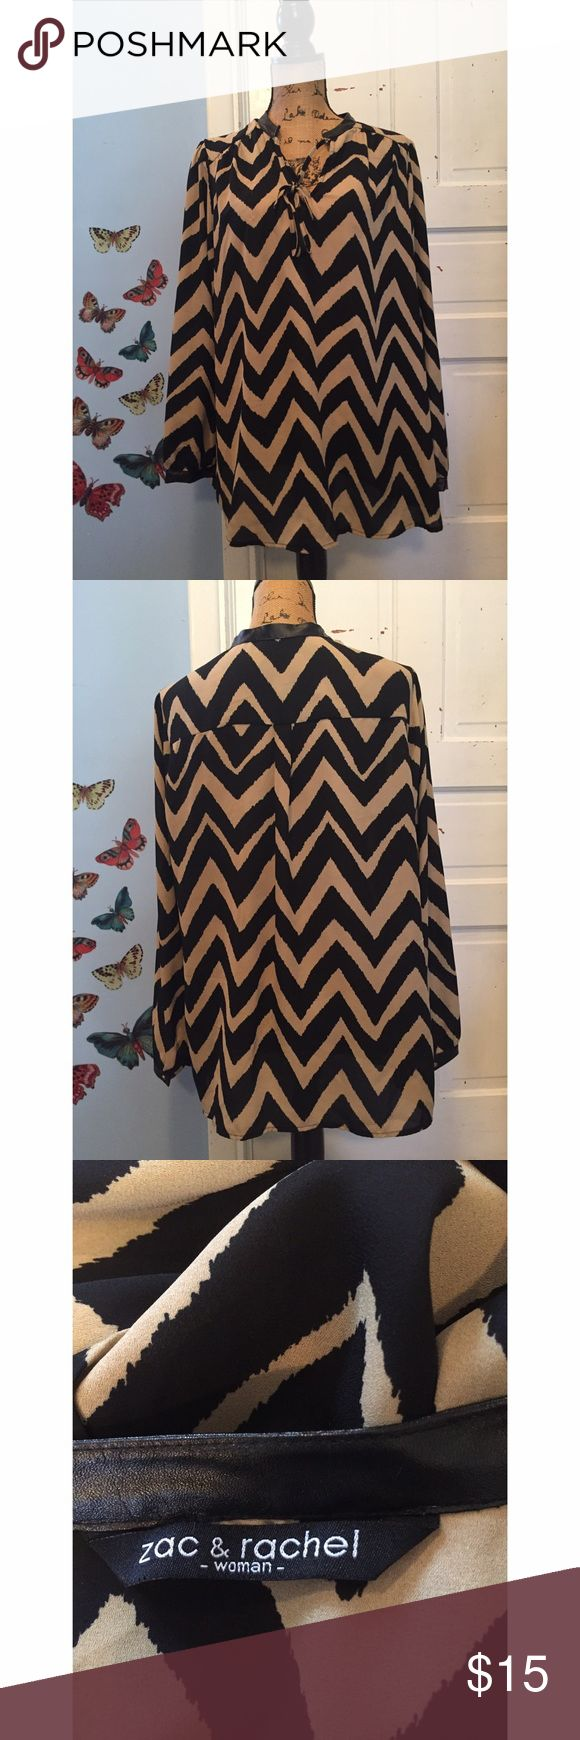 Zac & Rachel Chevron Blouse Measurements - Bust 25in / Length 27in In beautiful condition! ❤️ Has one small pull in the front but hardly noticeable when worn! zac & rachel  Tops